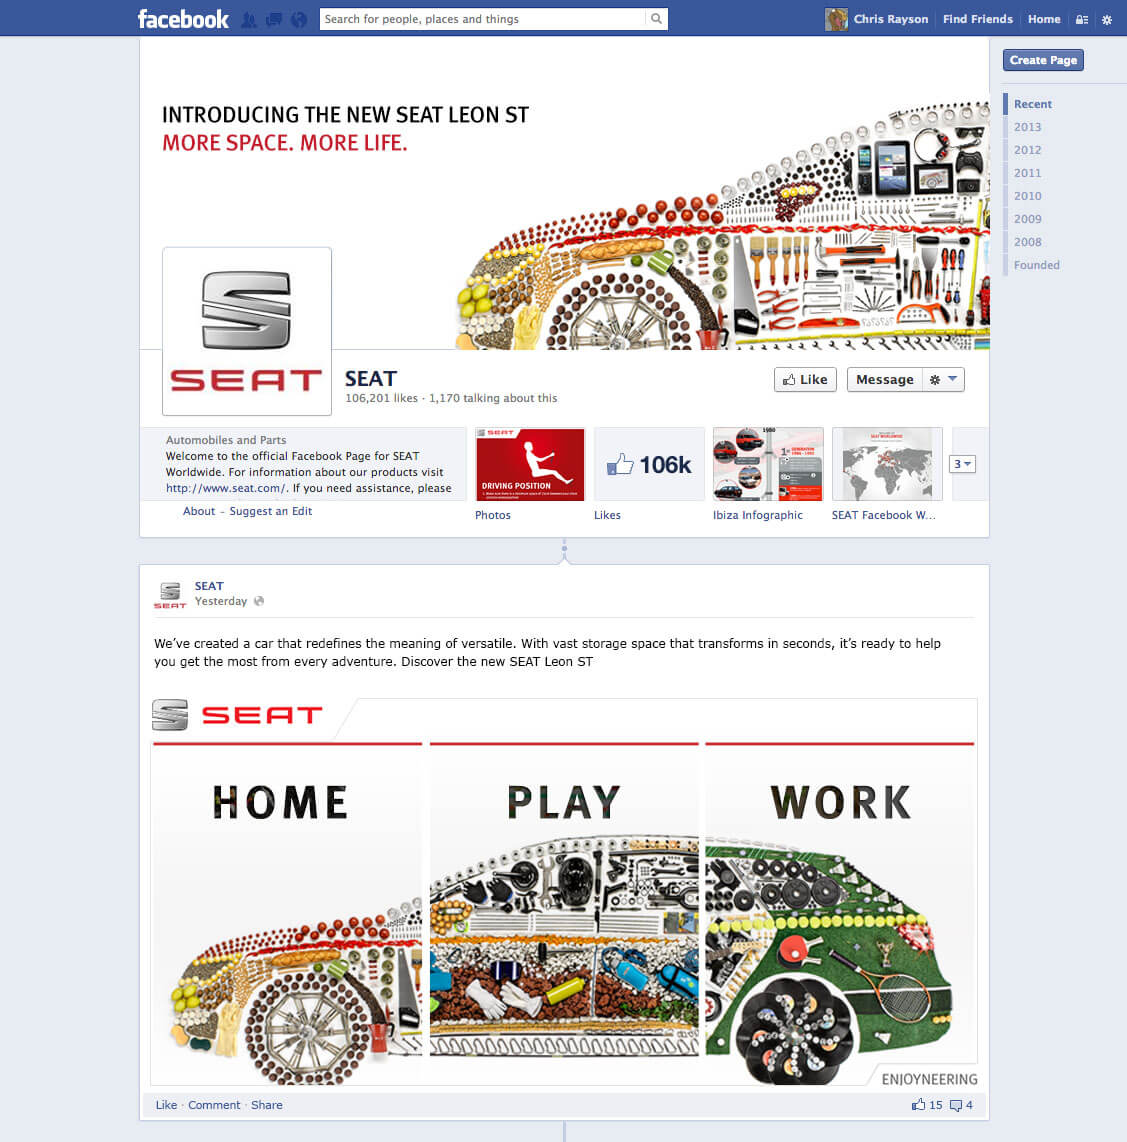 seat facebook screen